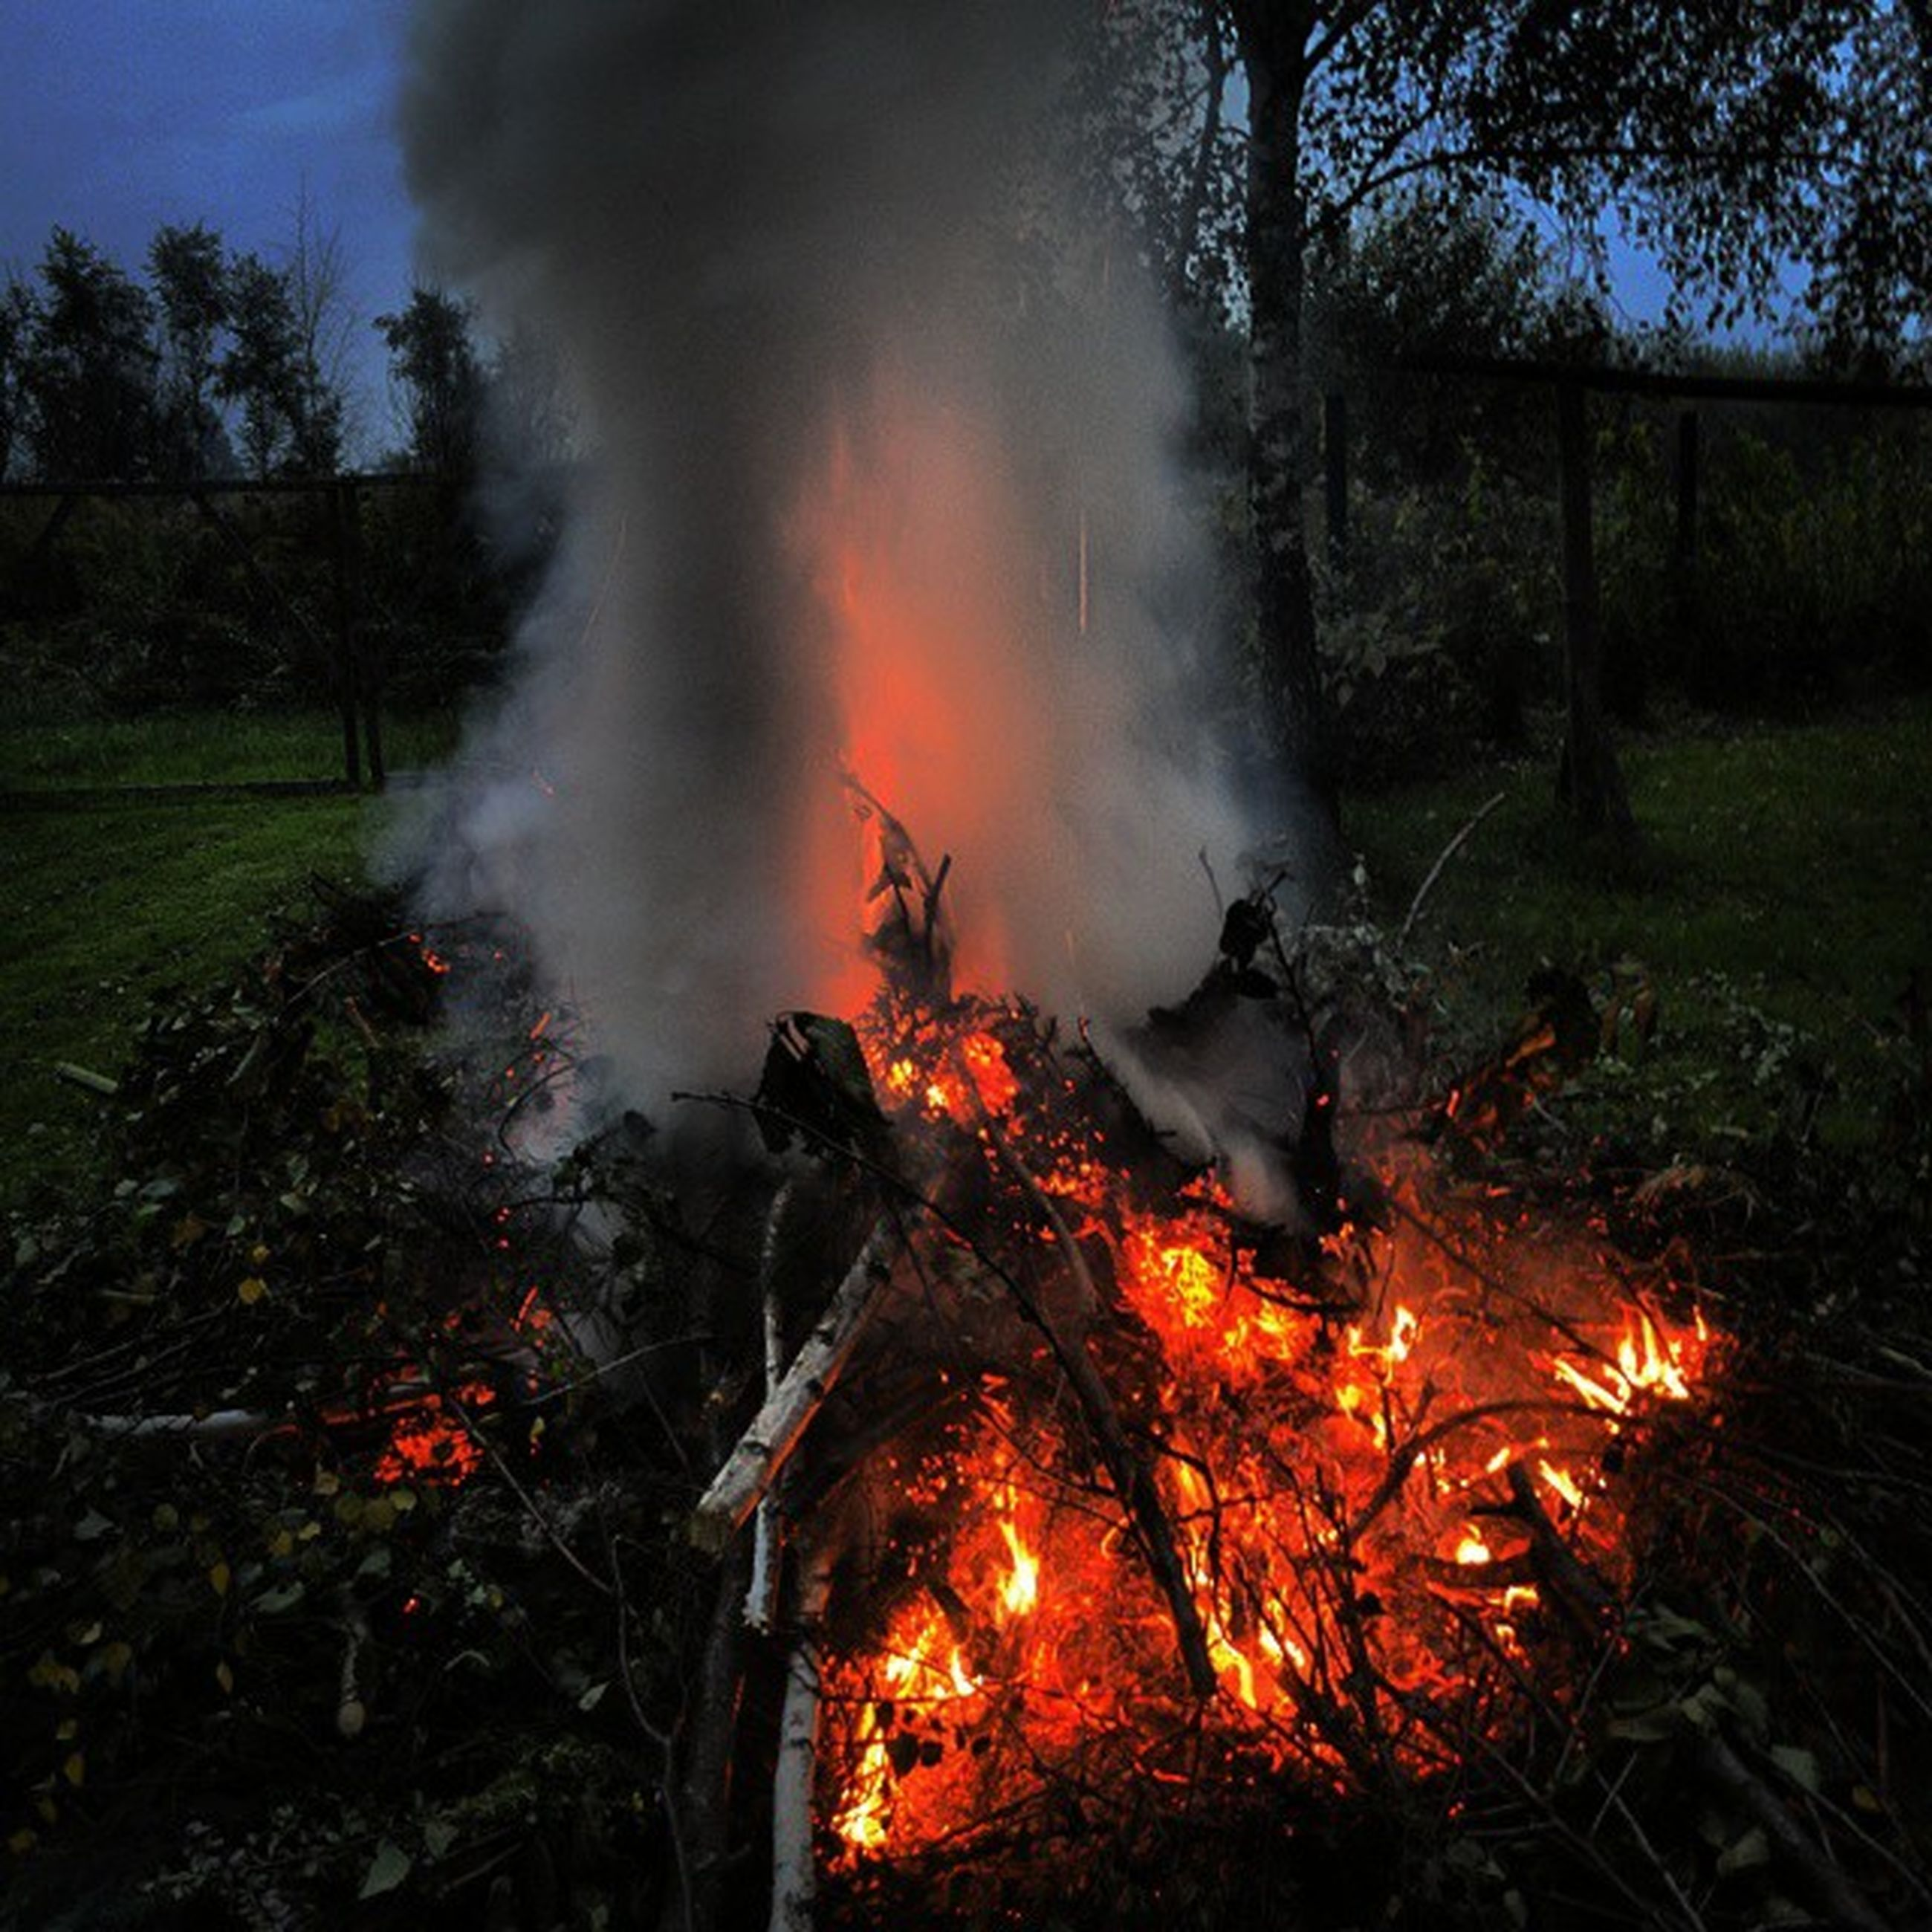 flame, burning, fire - natural phenomenon, heat - temperature, bonfire, firewood, motion, fire, smoke - physical structure, long exposure, orange color, glowing, campfire, tree, field, outdoors, forest, nature, grass, smoke